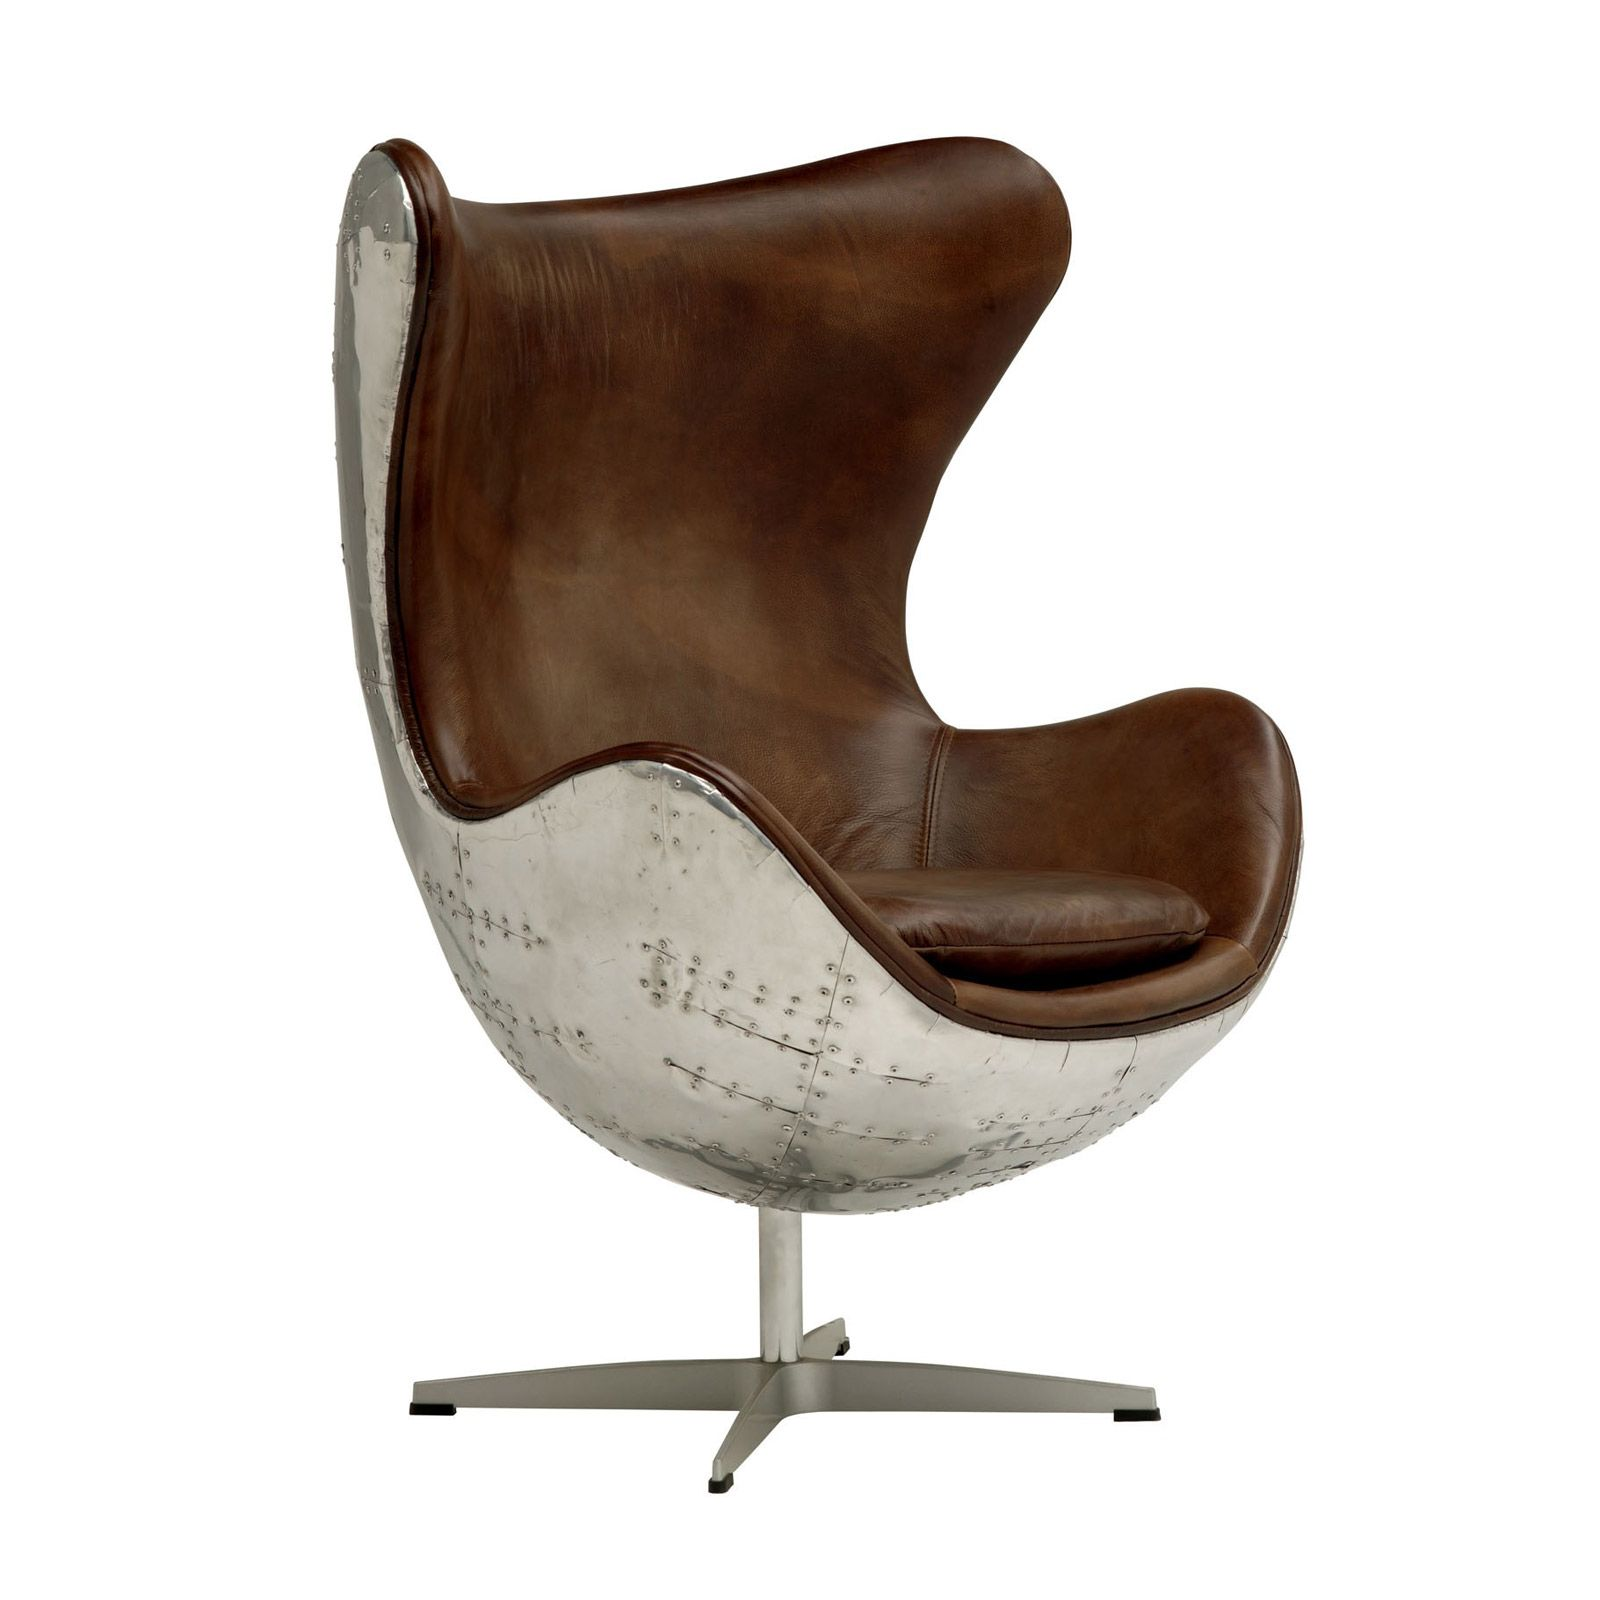 Cool Egg Chairs Morgan Modern Wingback Chair Dotandbo Could Be The